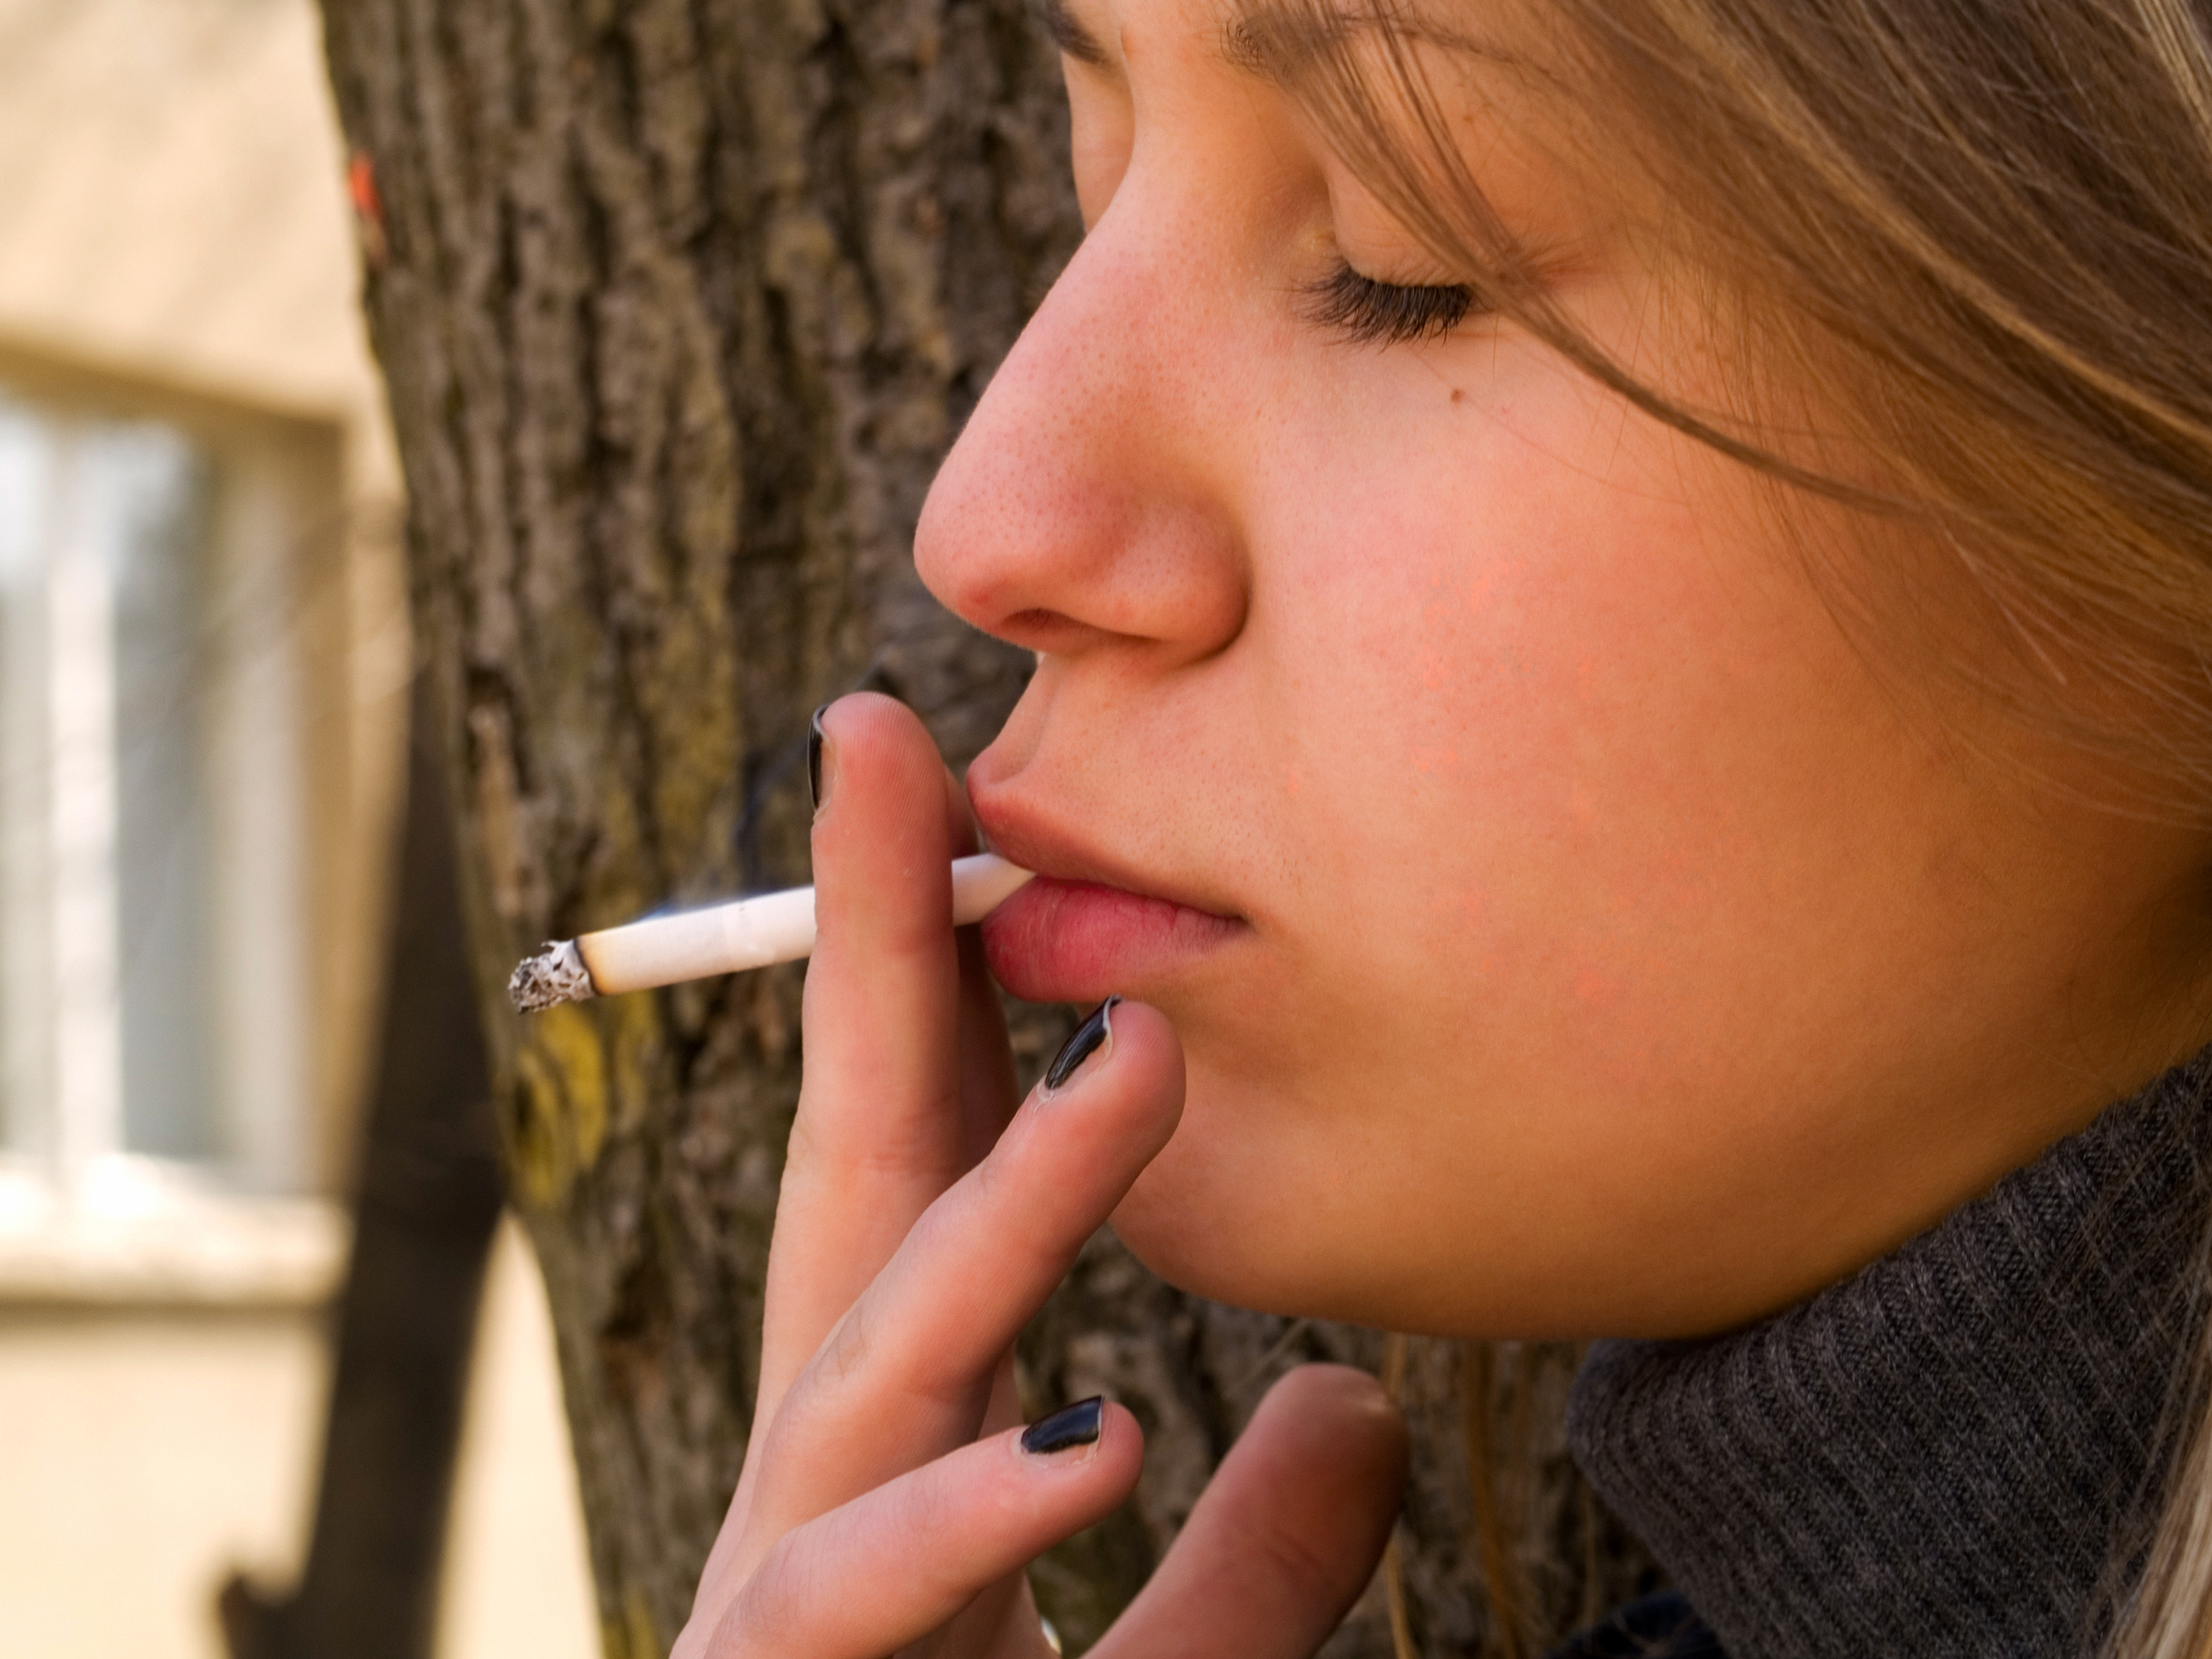 teenage smoking in canada essay Persuasive essay about smoking  smoking: teenage society smoking  student: tobacco and health canada quit smoking - 486 words.